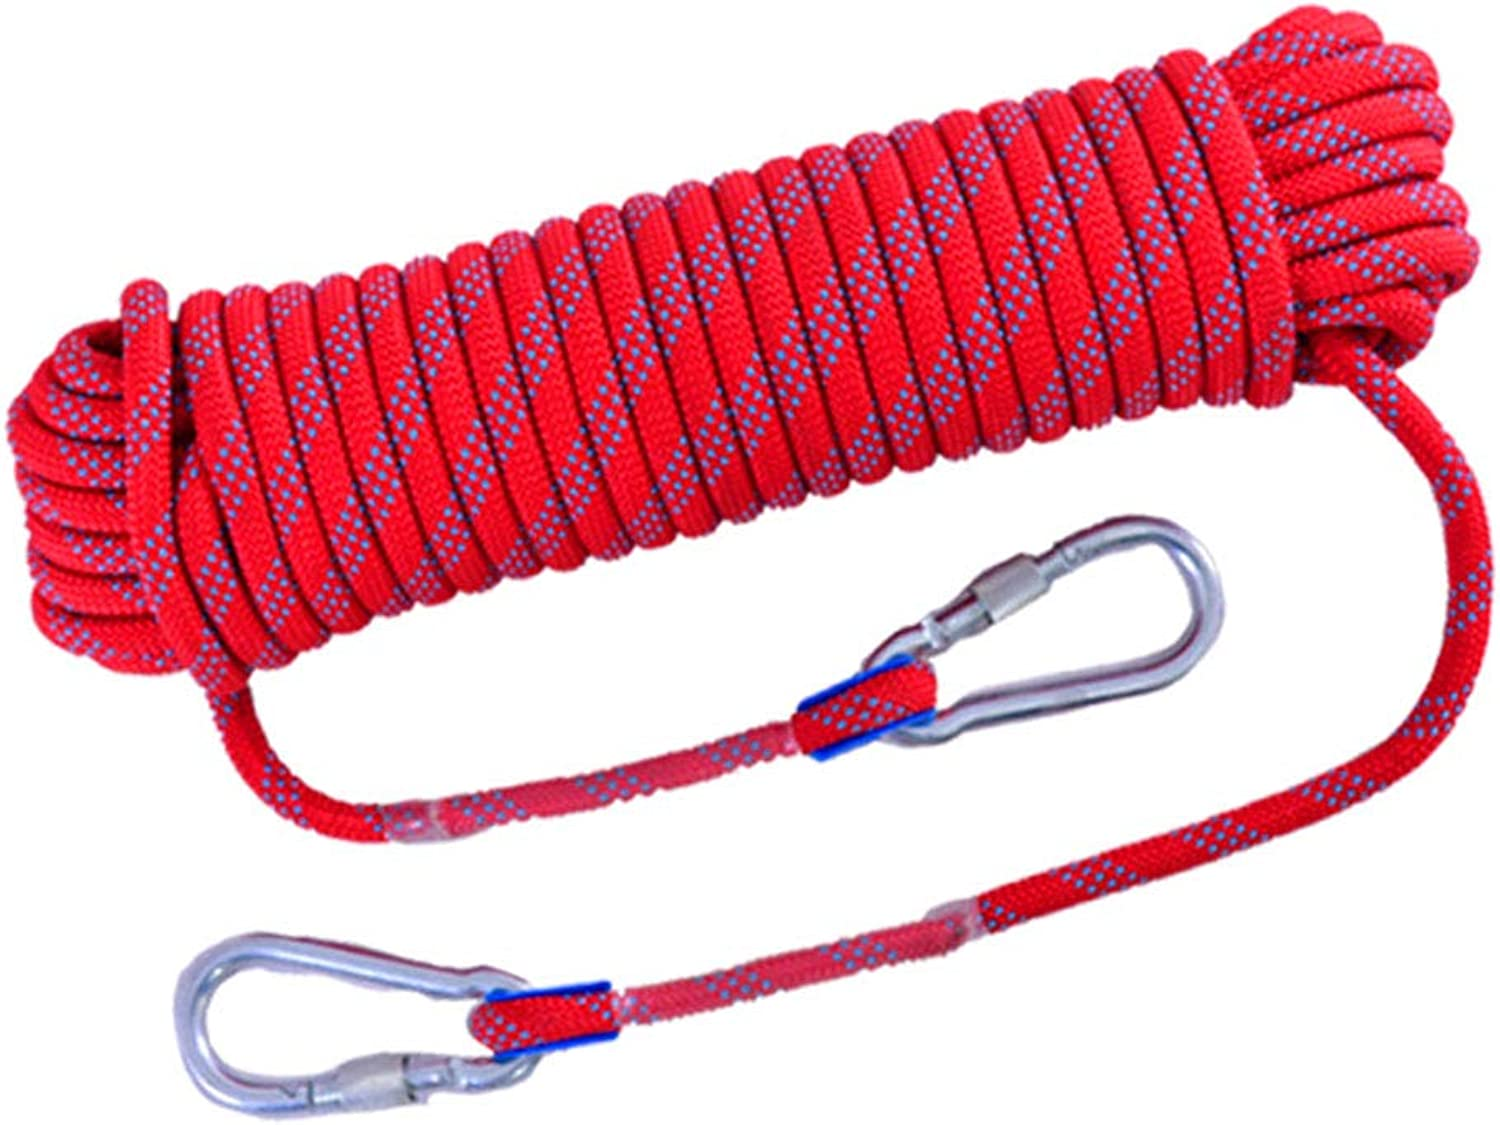 Safety Rope Climbing Rope Lifeline Rescue Rope Outdoor Truck Bundled Escape Climbing Rope Multi-Purpose Walking Equipment,A,10mm20M